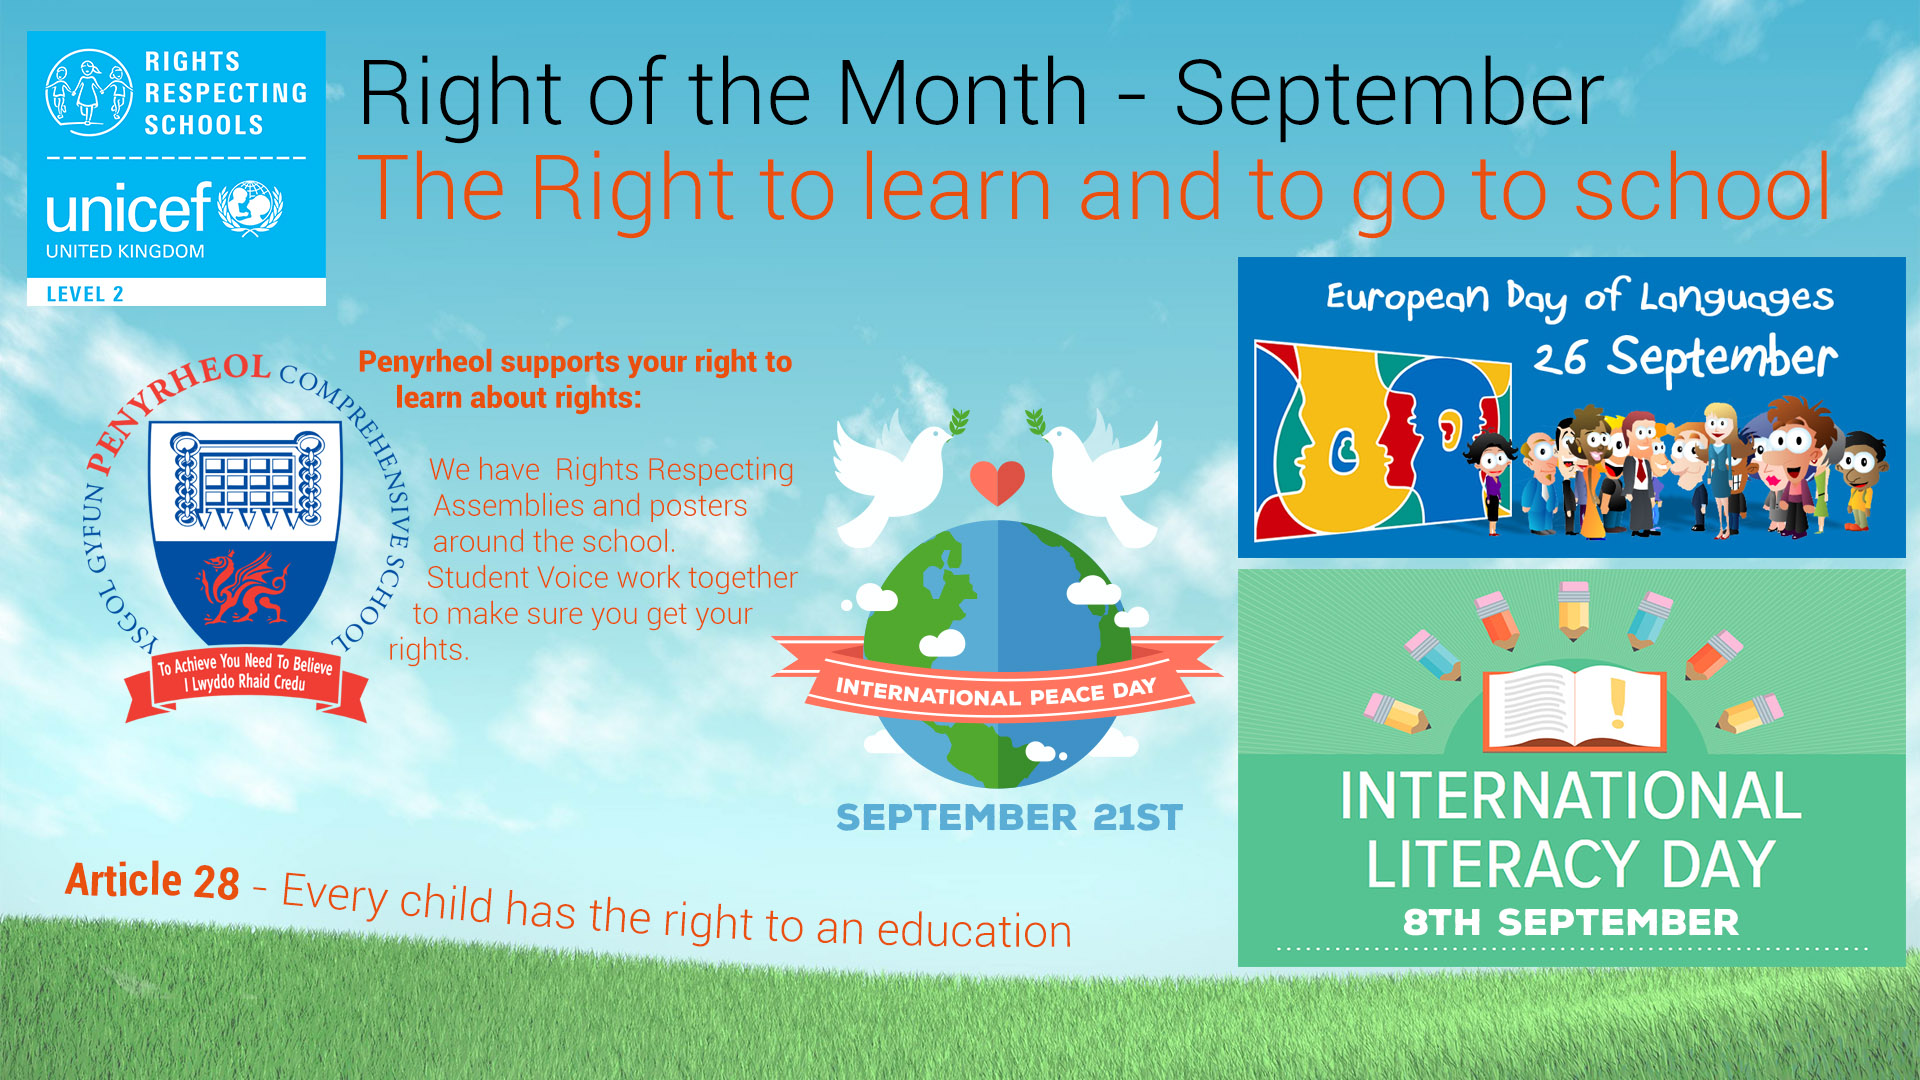 Rights Respecting Schools Poster September. The Right to an education and to go to school. Literacy day 8th September. European Day of Languages 26th September